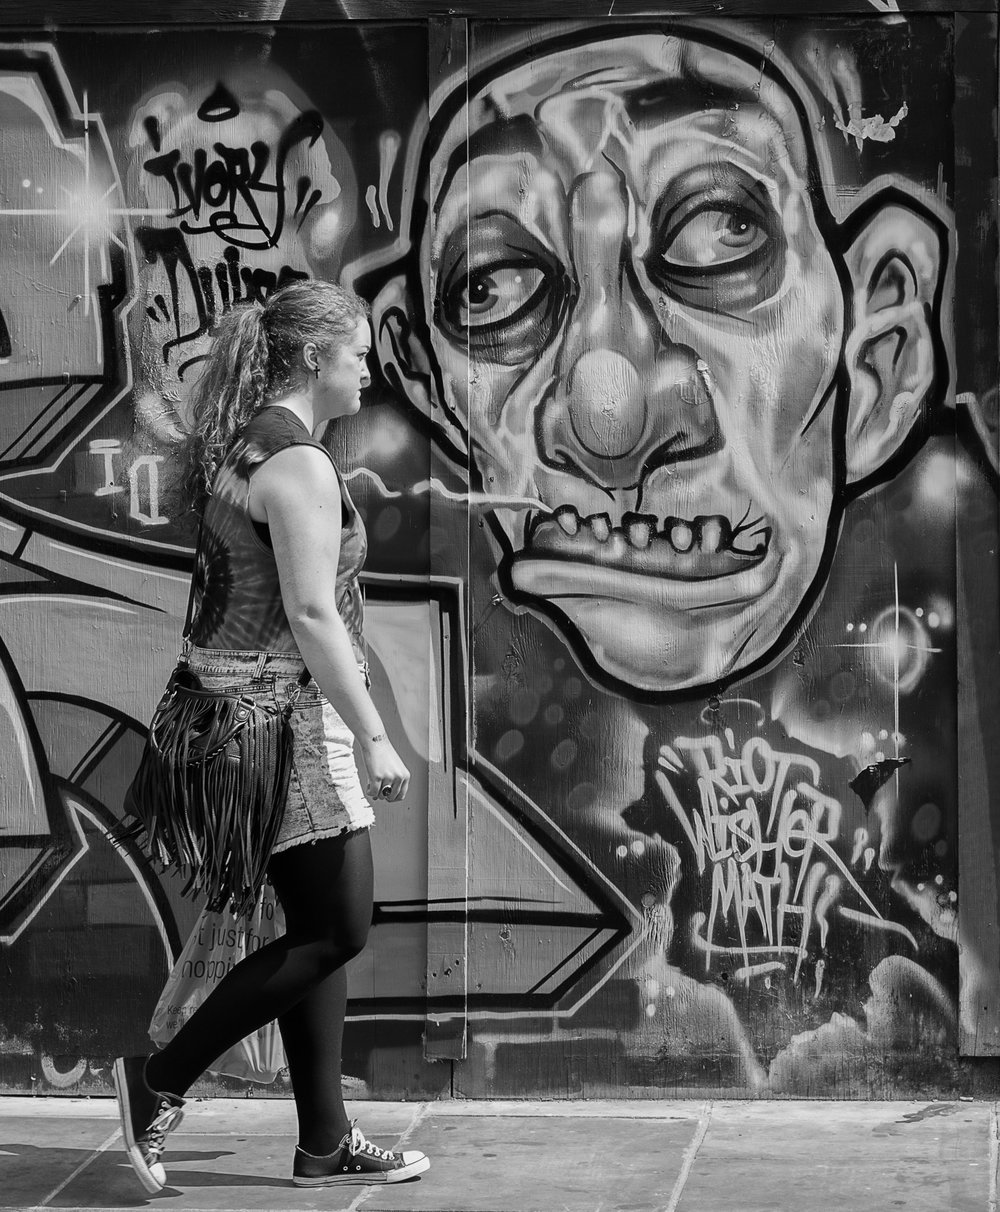 Scary Faces, Brick Lane 2012 with the Leica Monochrom Mk.I, 50mm Summicron.